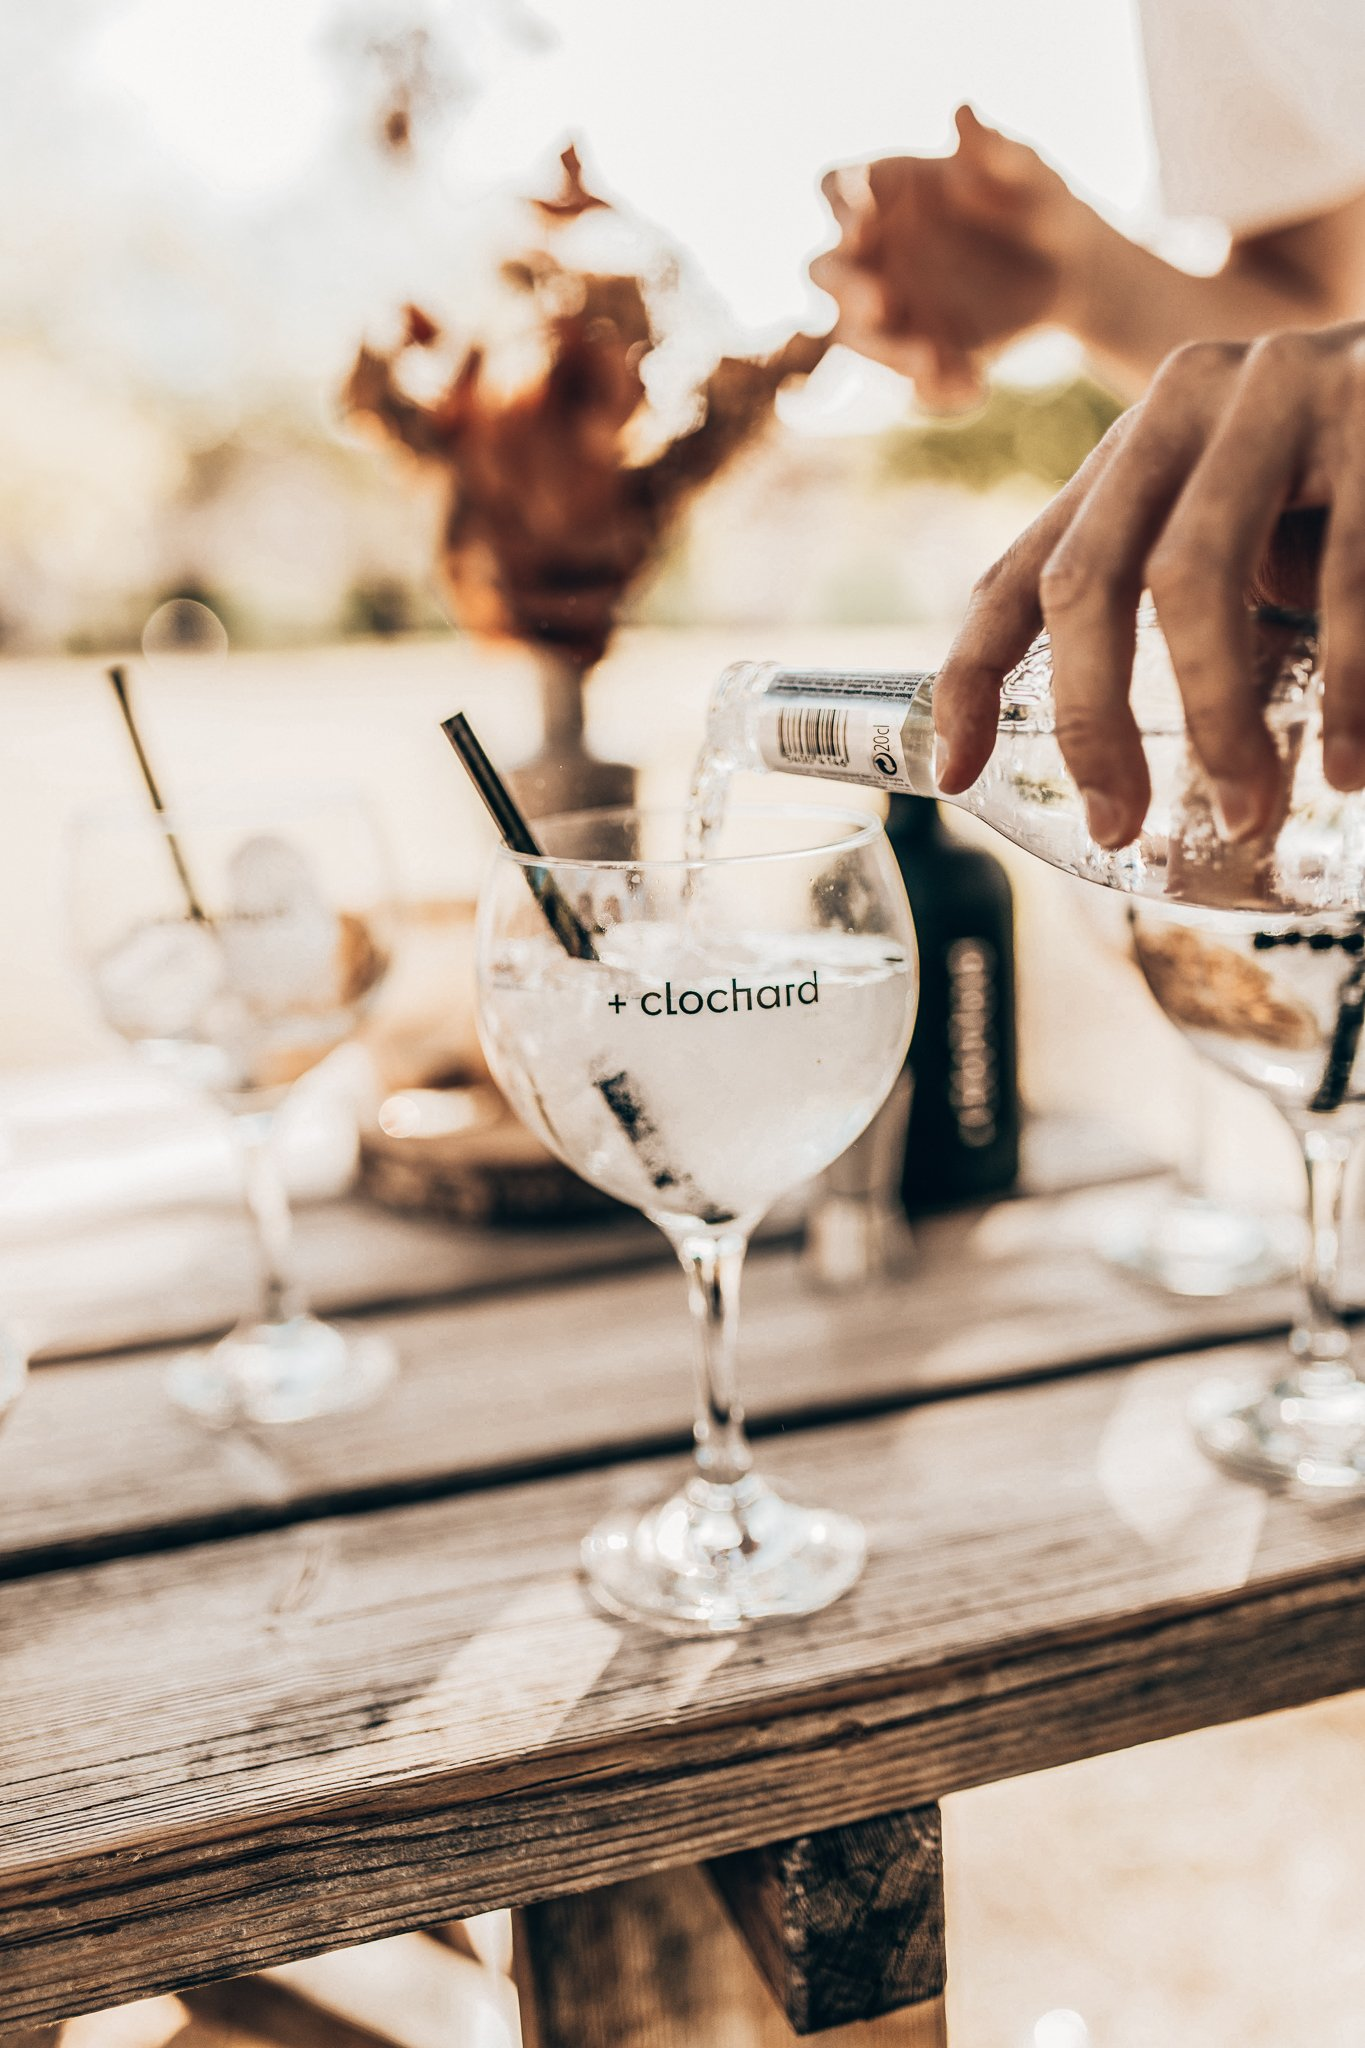 Perfect serve, gin-tonic, Clochard Gin, Alles over gin.